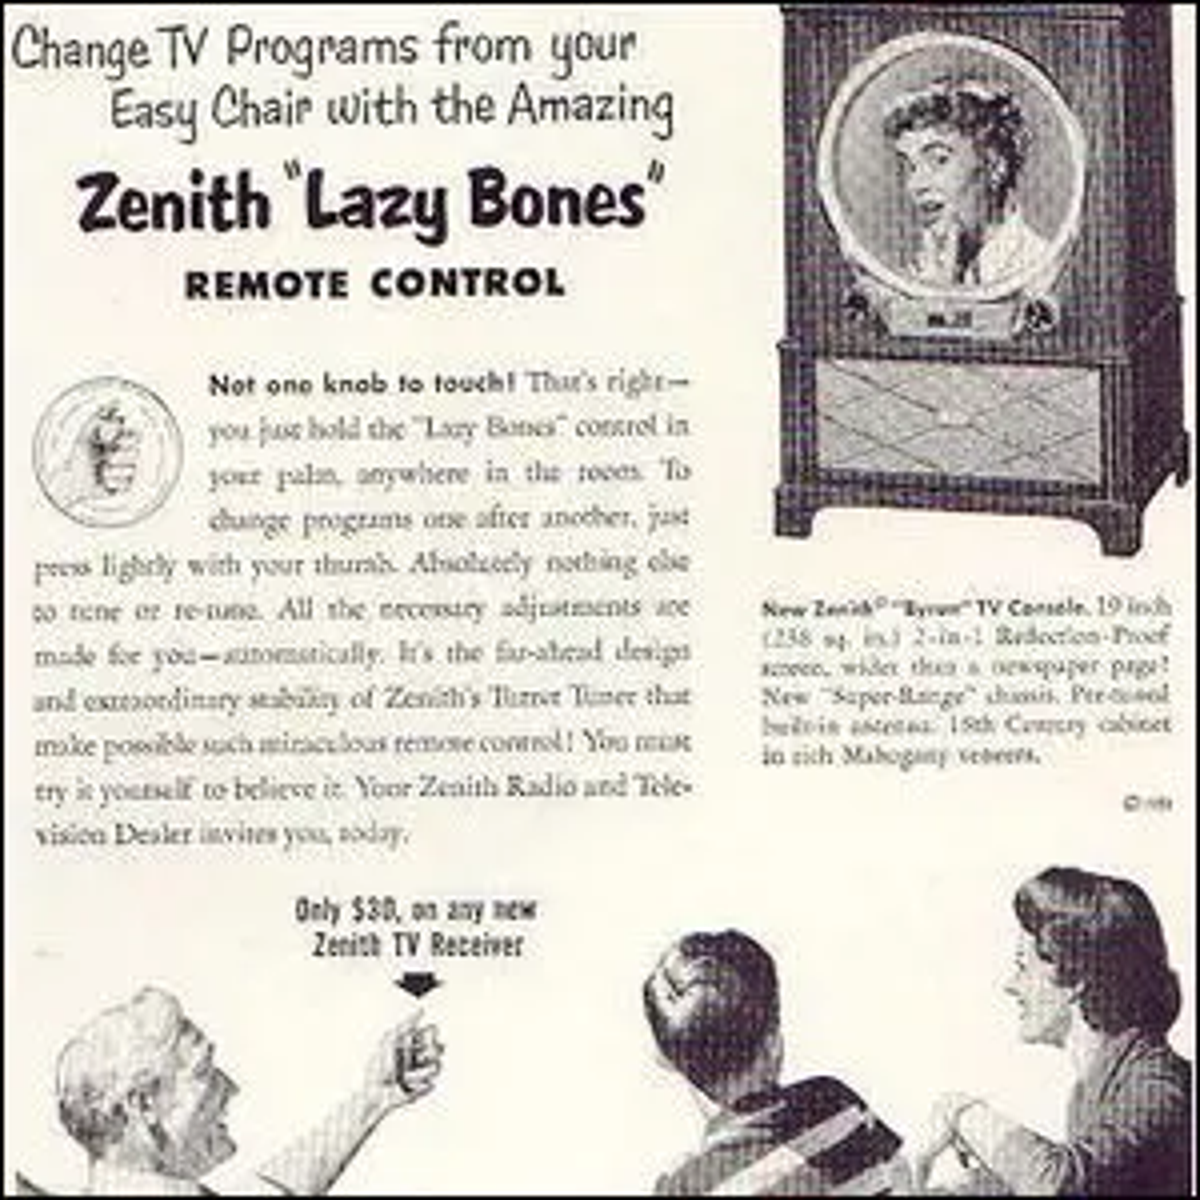 """An early advertisement for Zenith's """"Lazy Bones"""" remote control."""